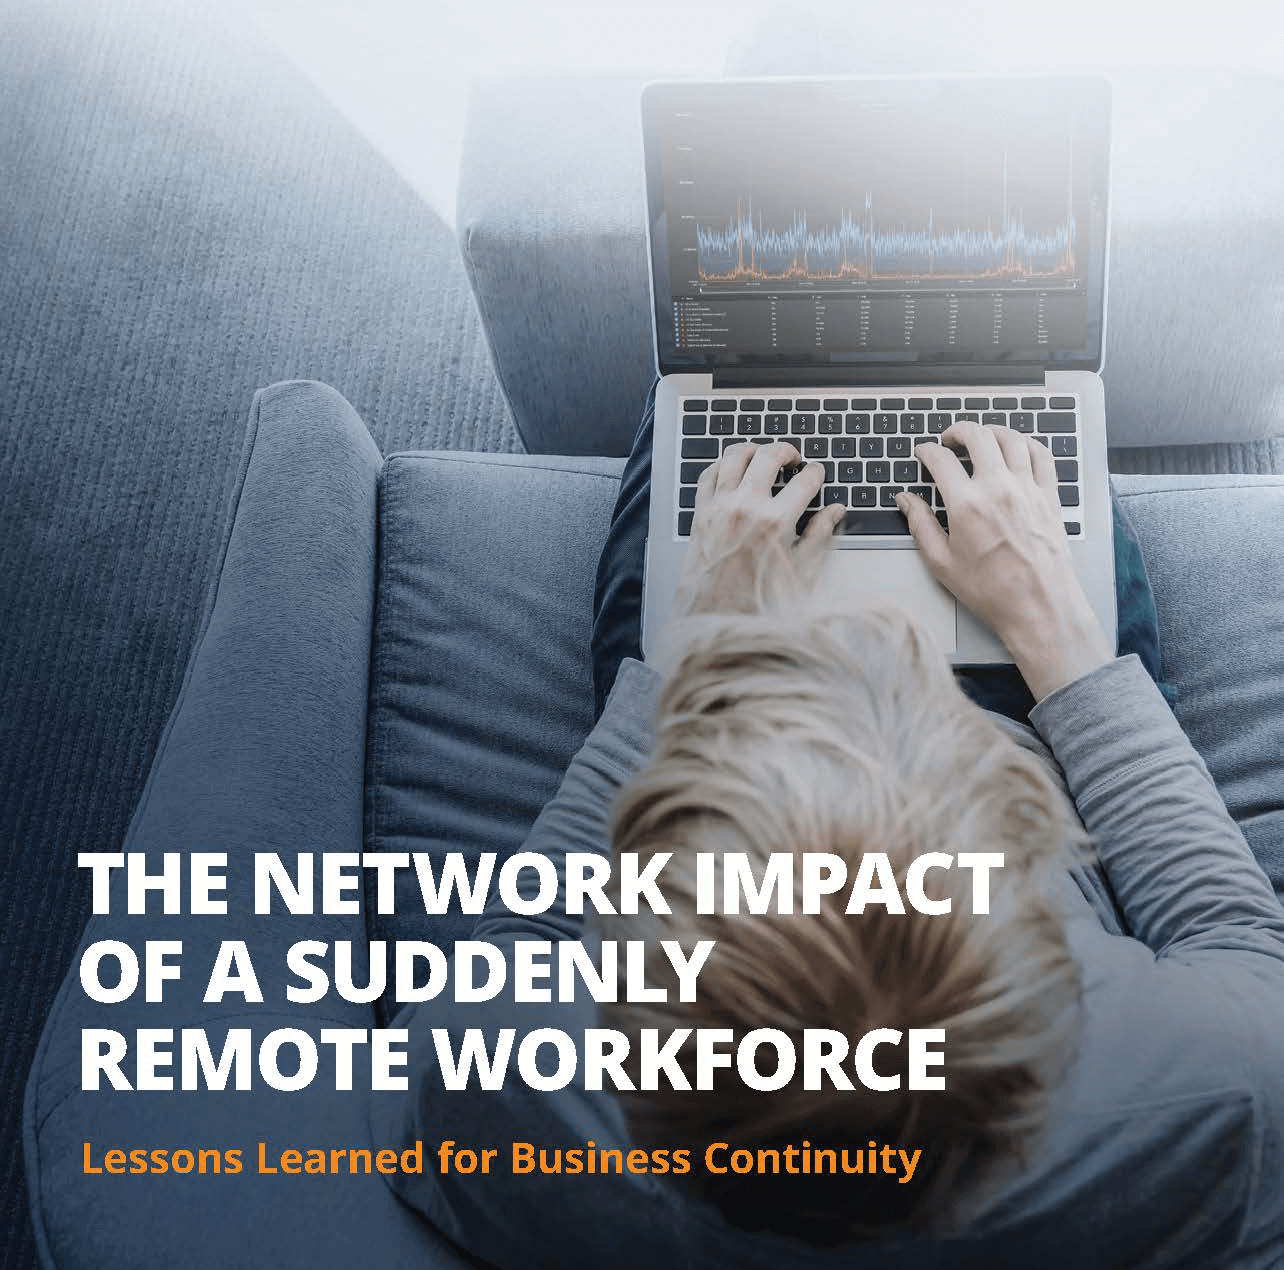 The Network Impact of the Suddenly Remote Workforce